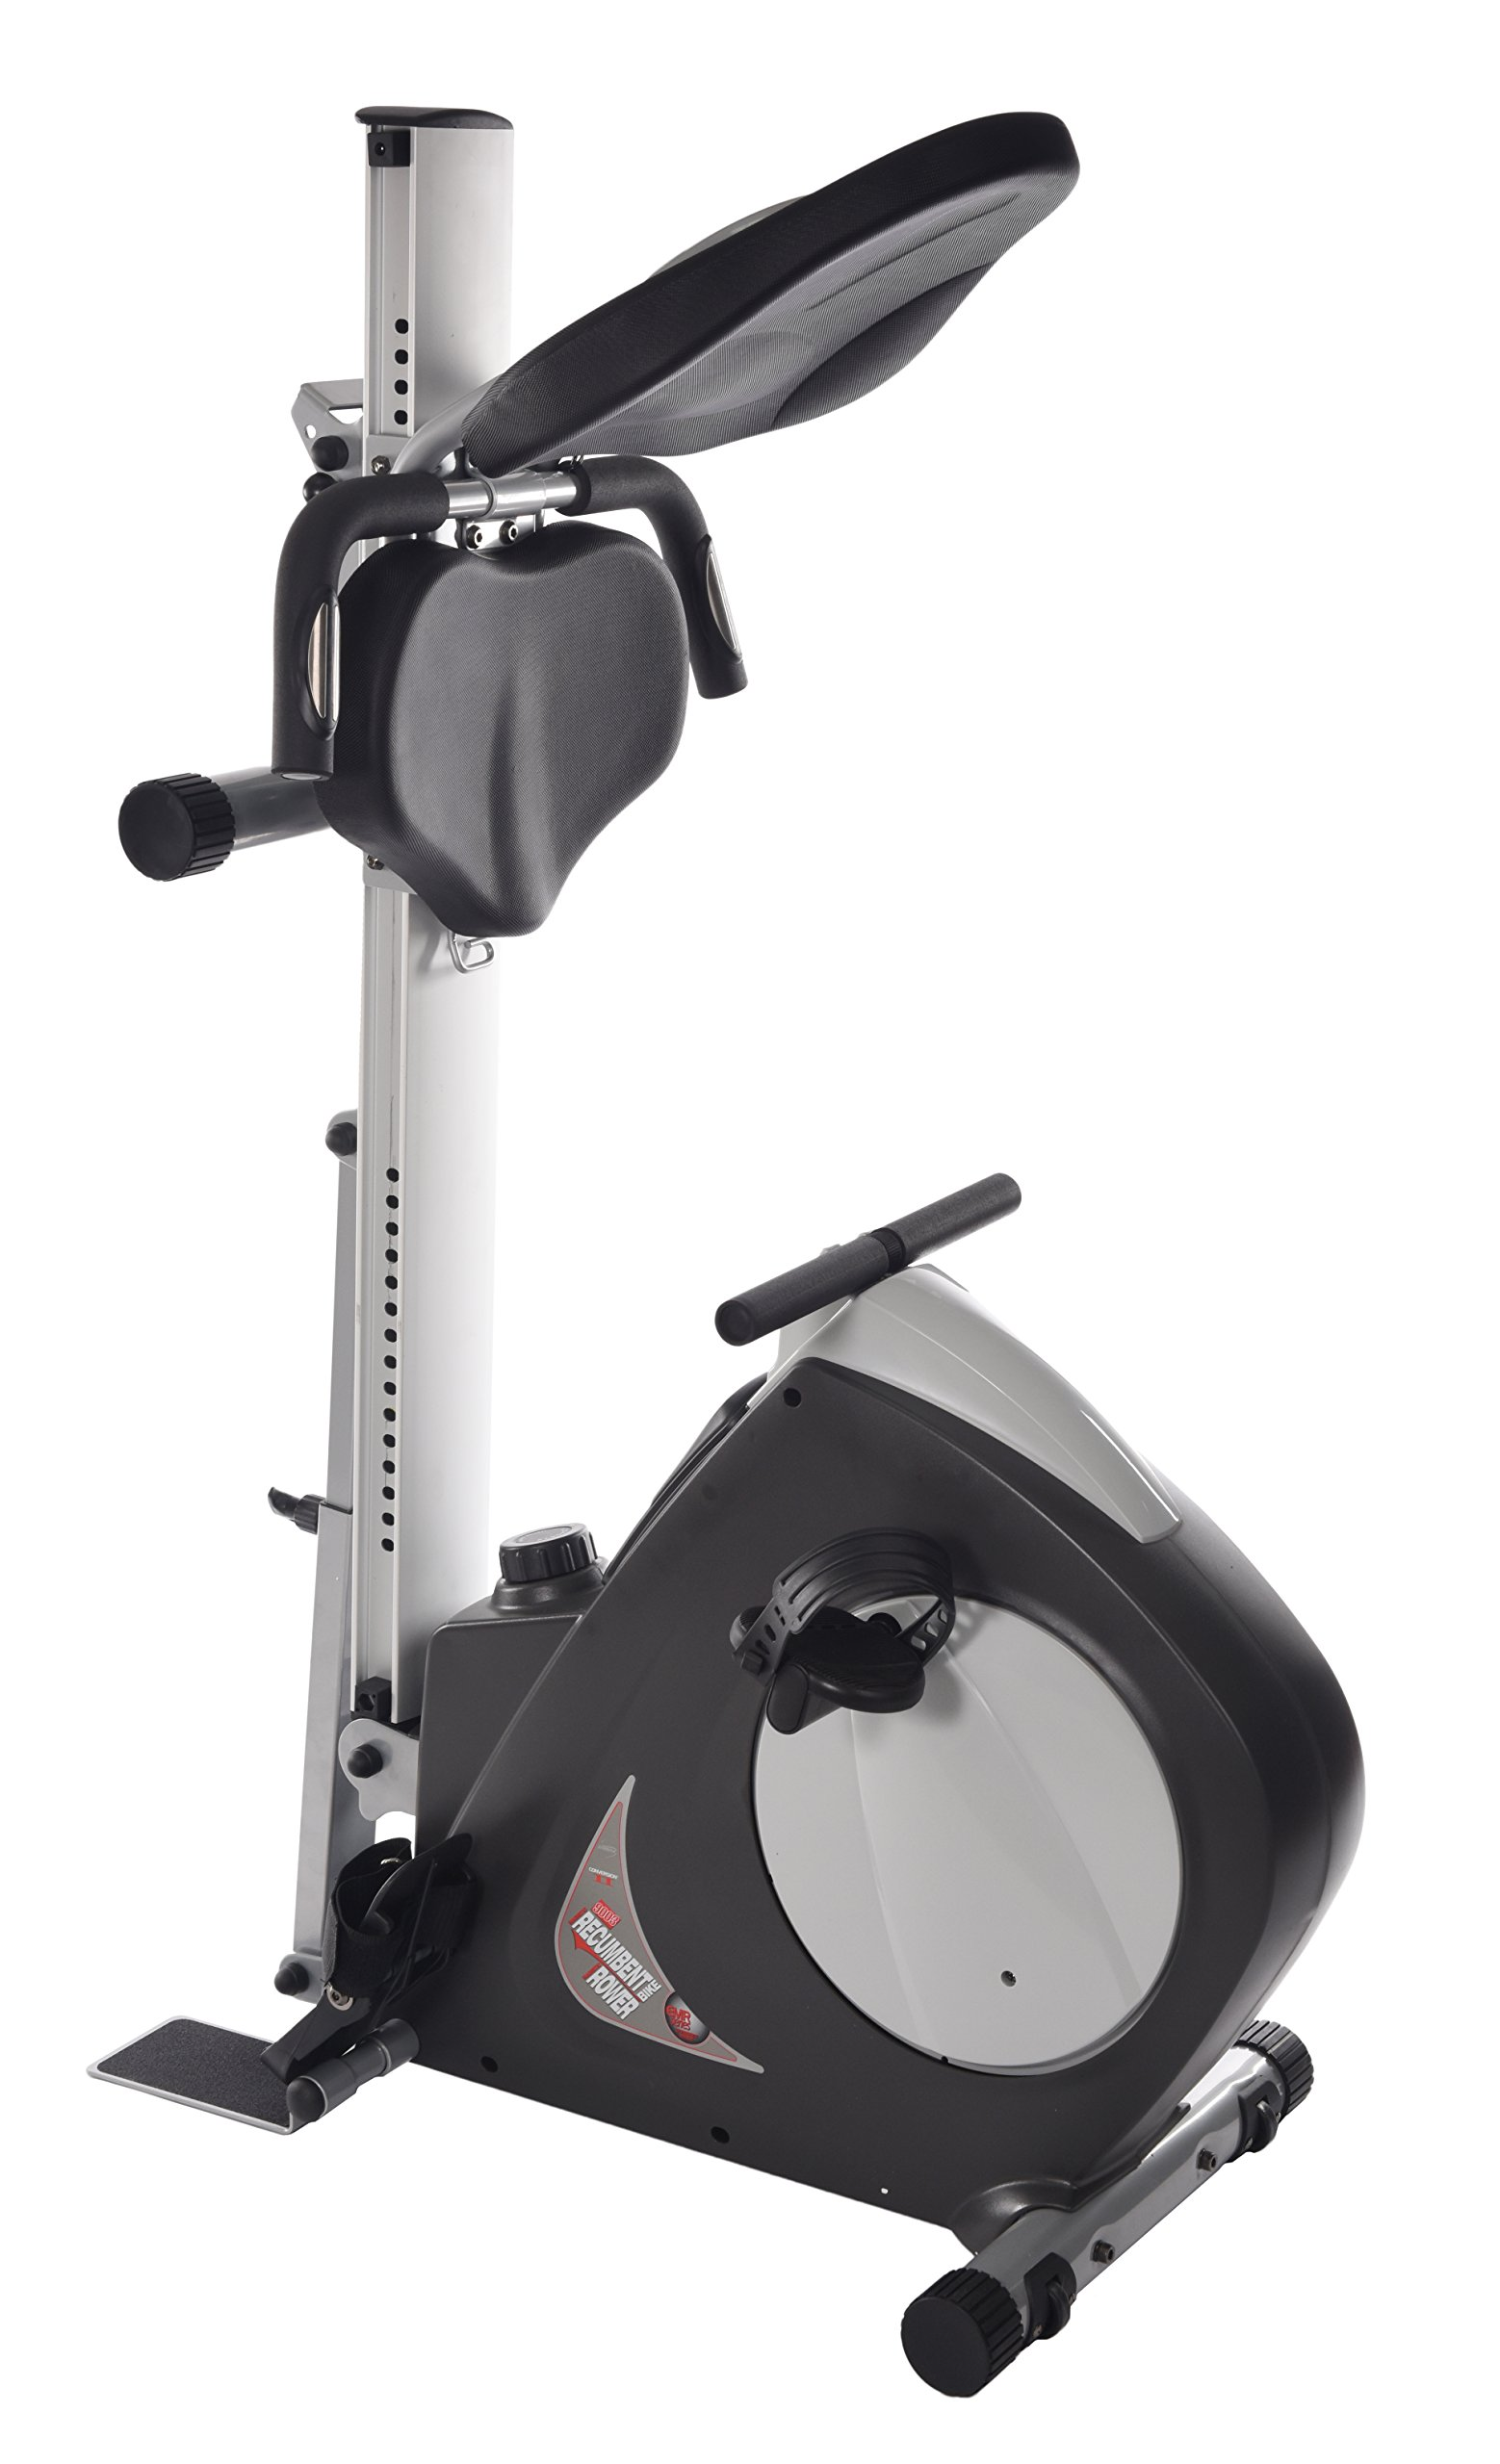 Stamina 15-9003 Deluxe Conversion II Recumbent / Rower by Stamina (Image #10)